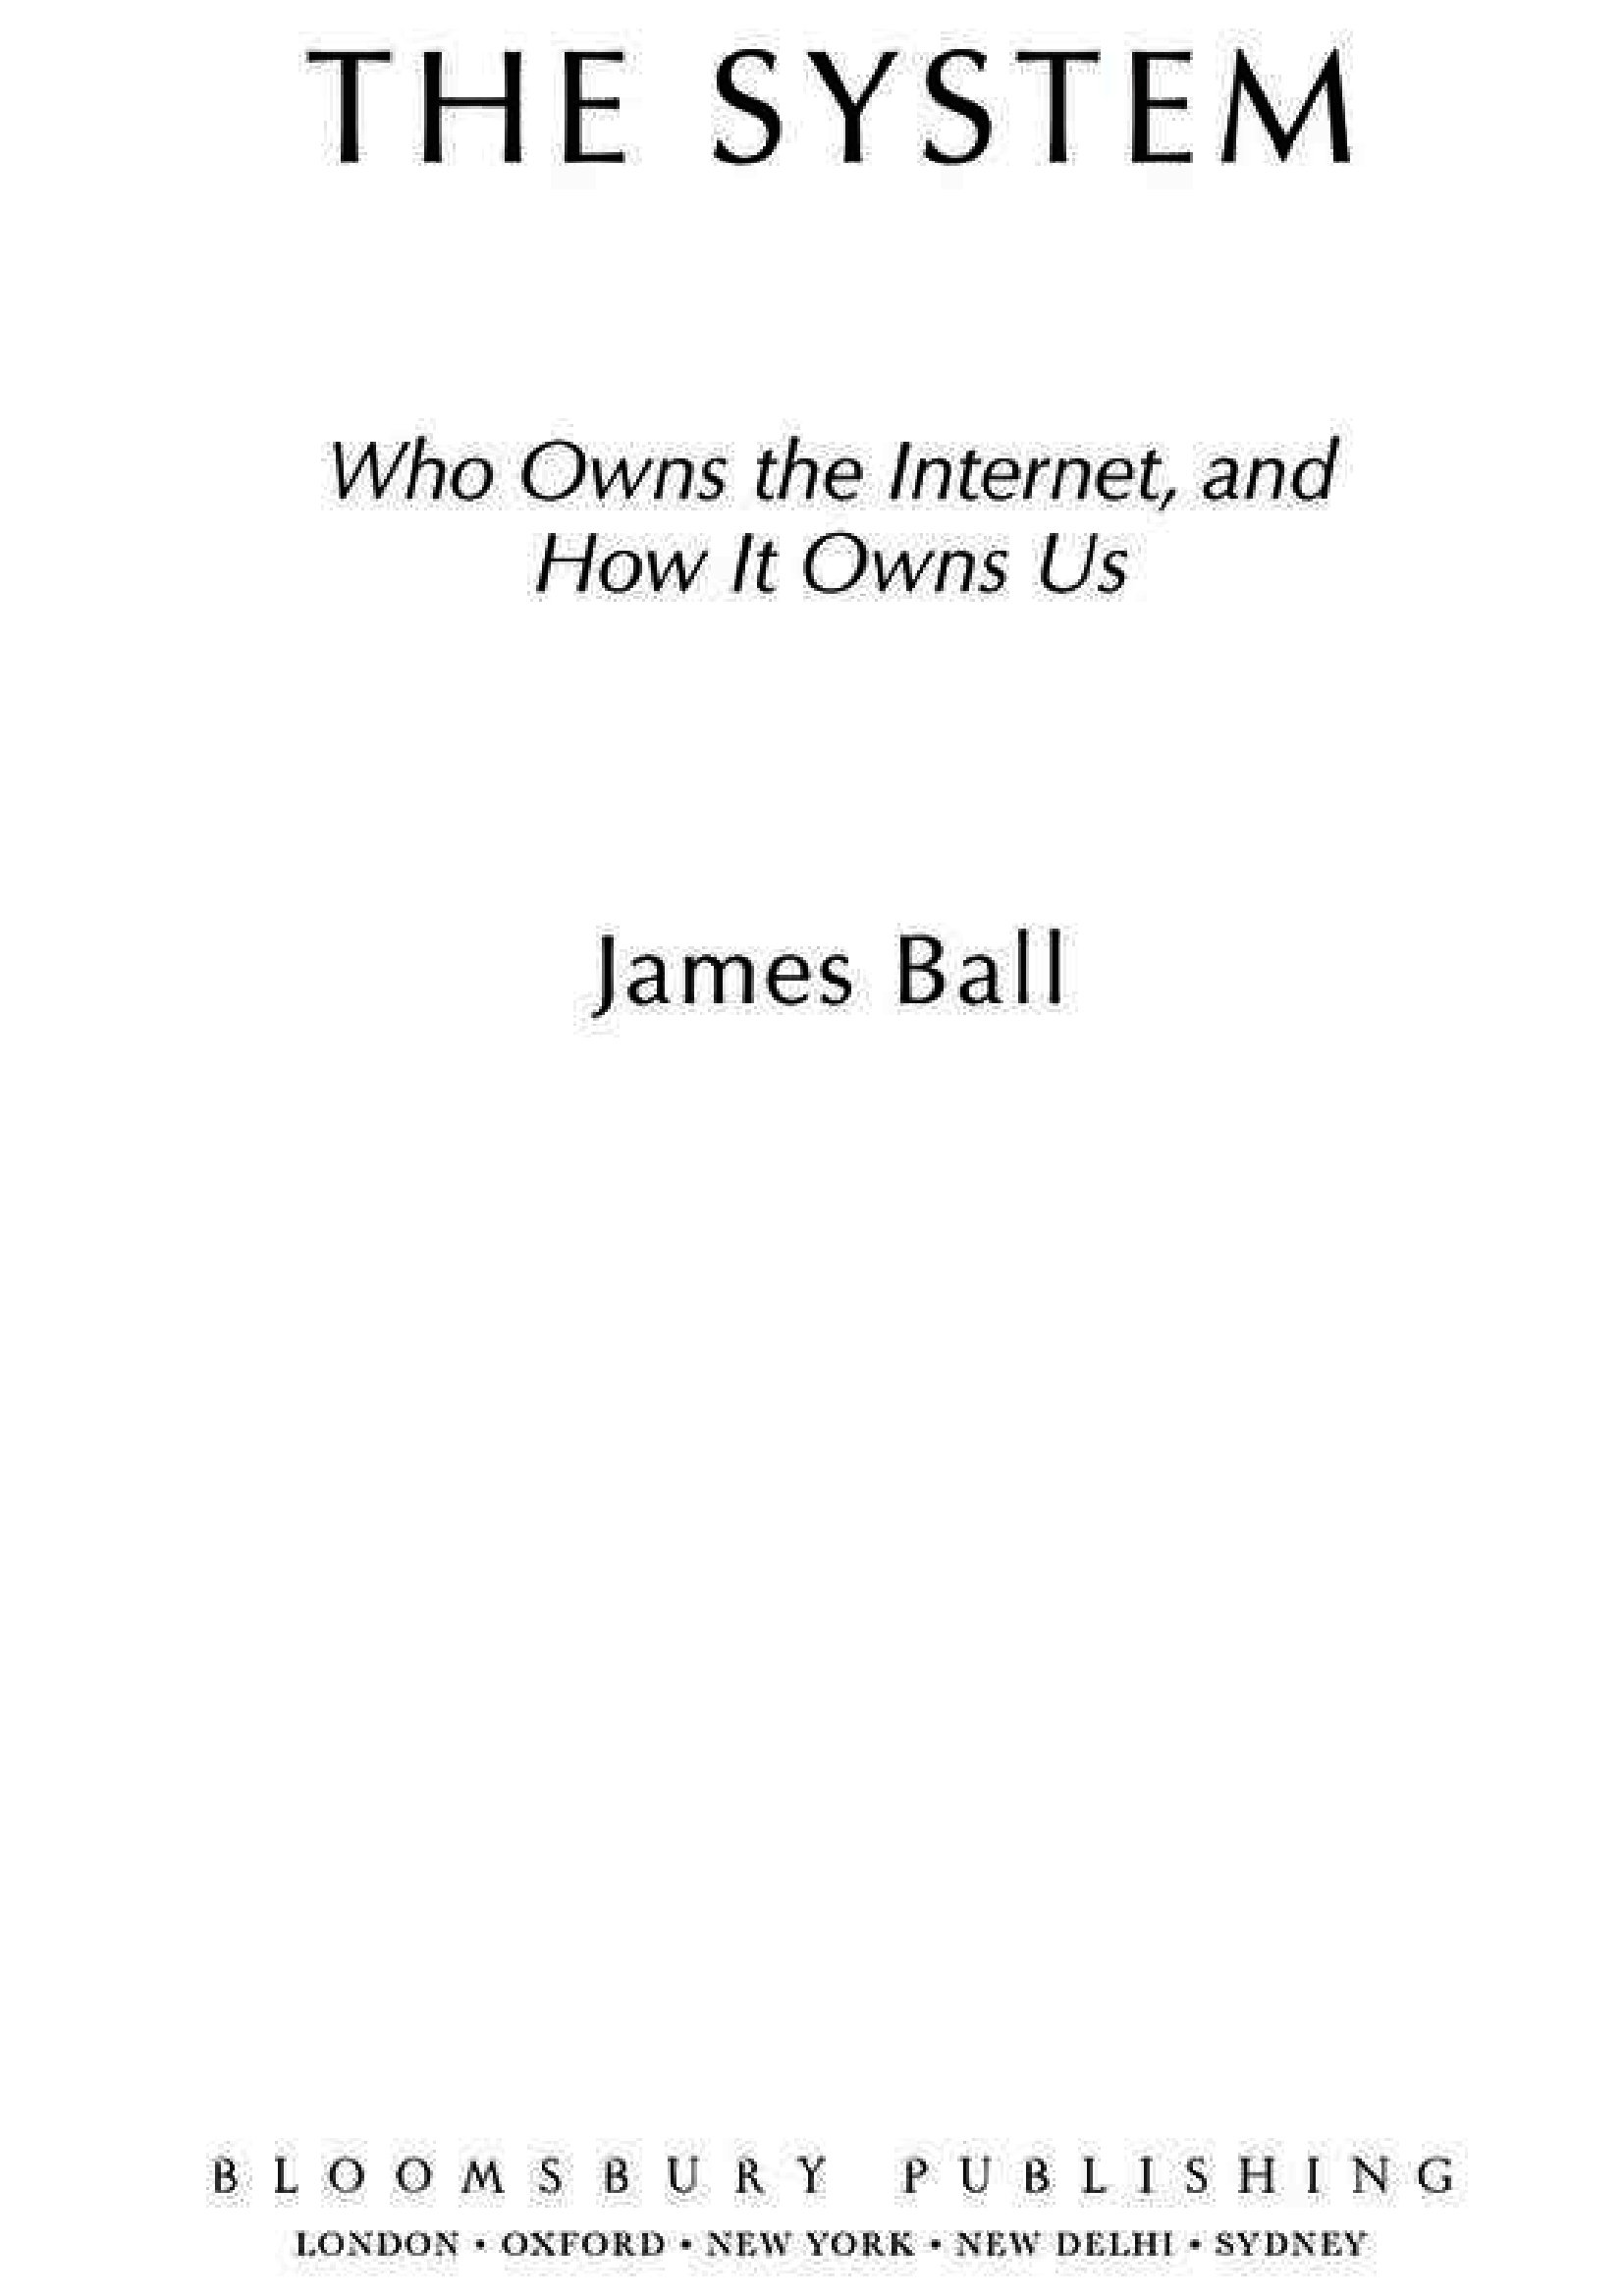 Книга « The System: Who Owns the Internet, and How It Owns Us », автора Джеймс Болл – фото №2 - миниатюра